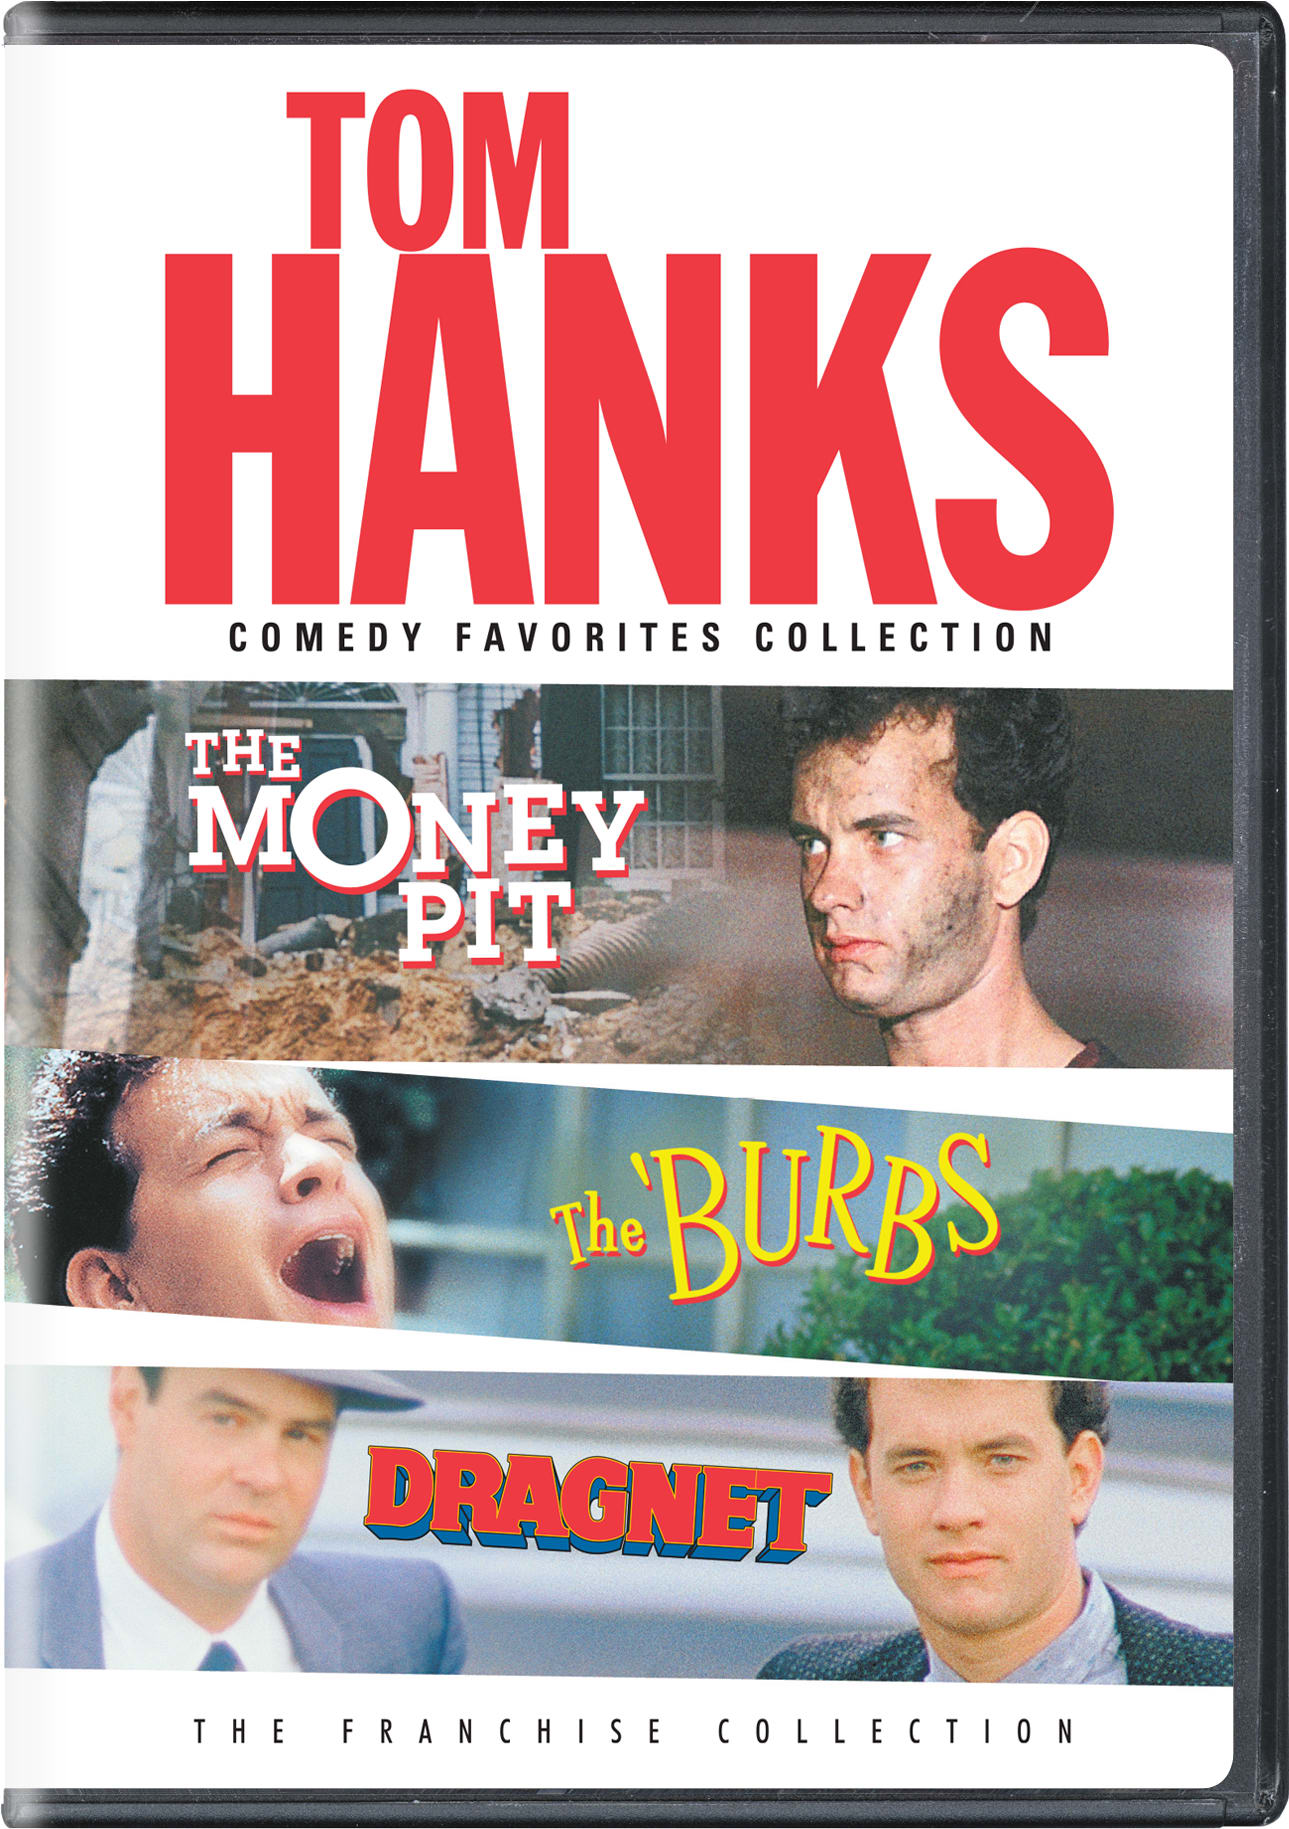 Tom Hanks: Comedy Favorites Collection [DVD]